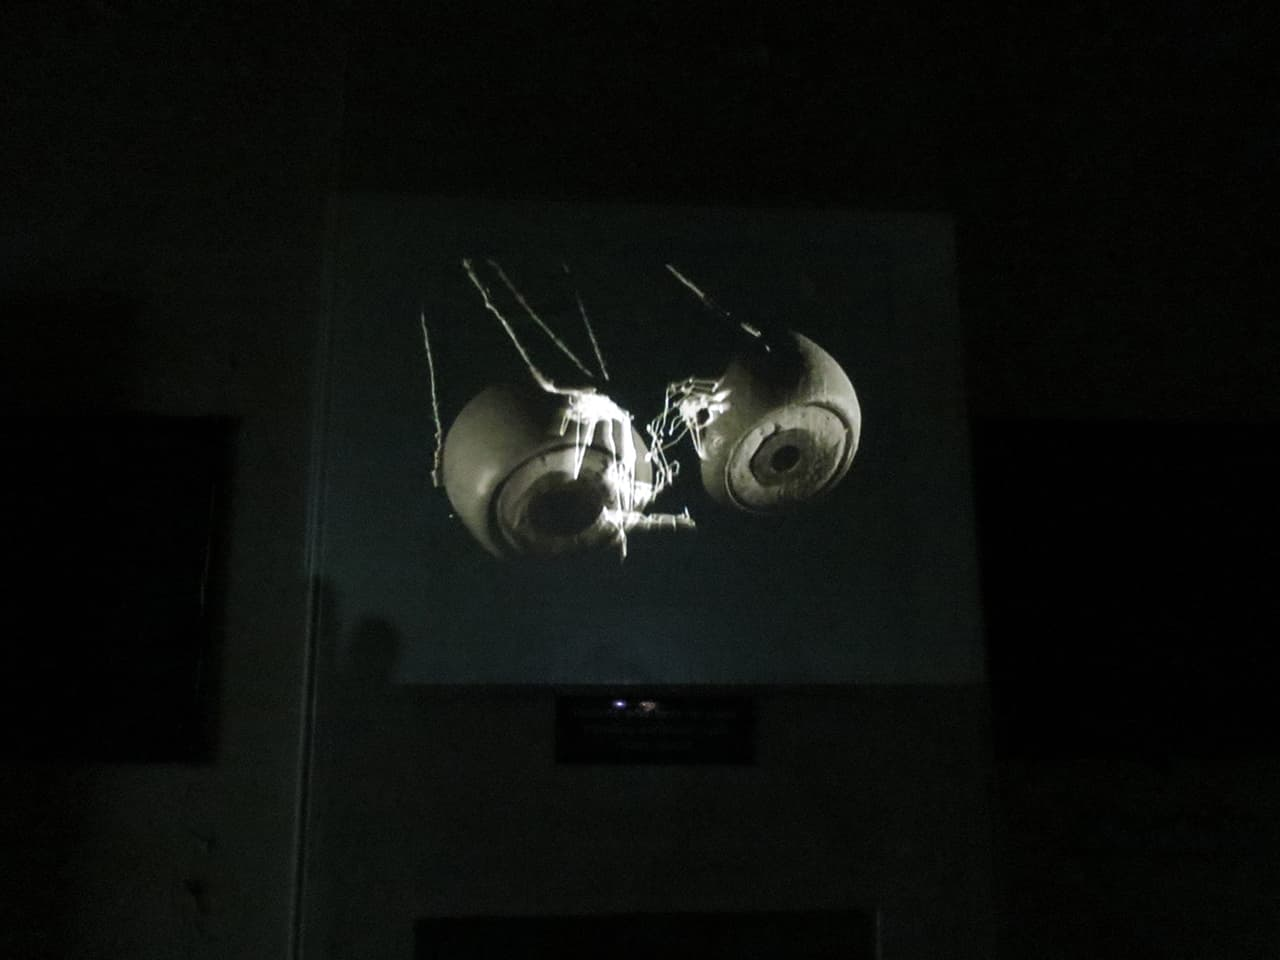 <strong>Memoirs</strong>, video installation by Susan Aldworth at St Clement's Hospital, 2013. Photograph by Emma Crouch.